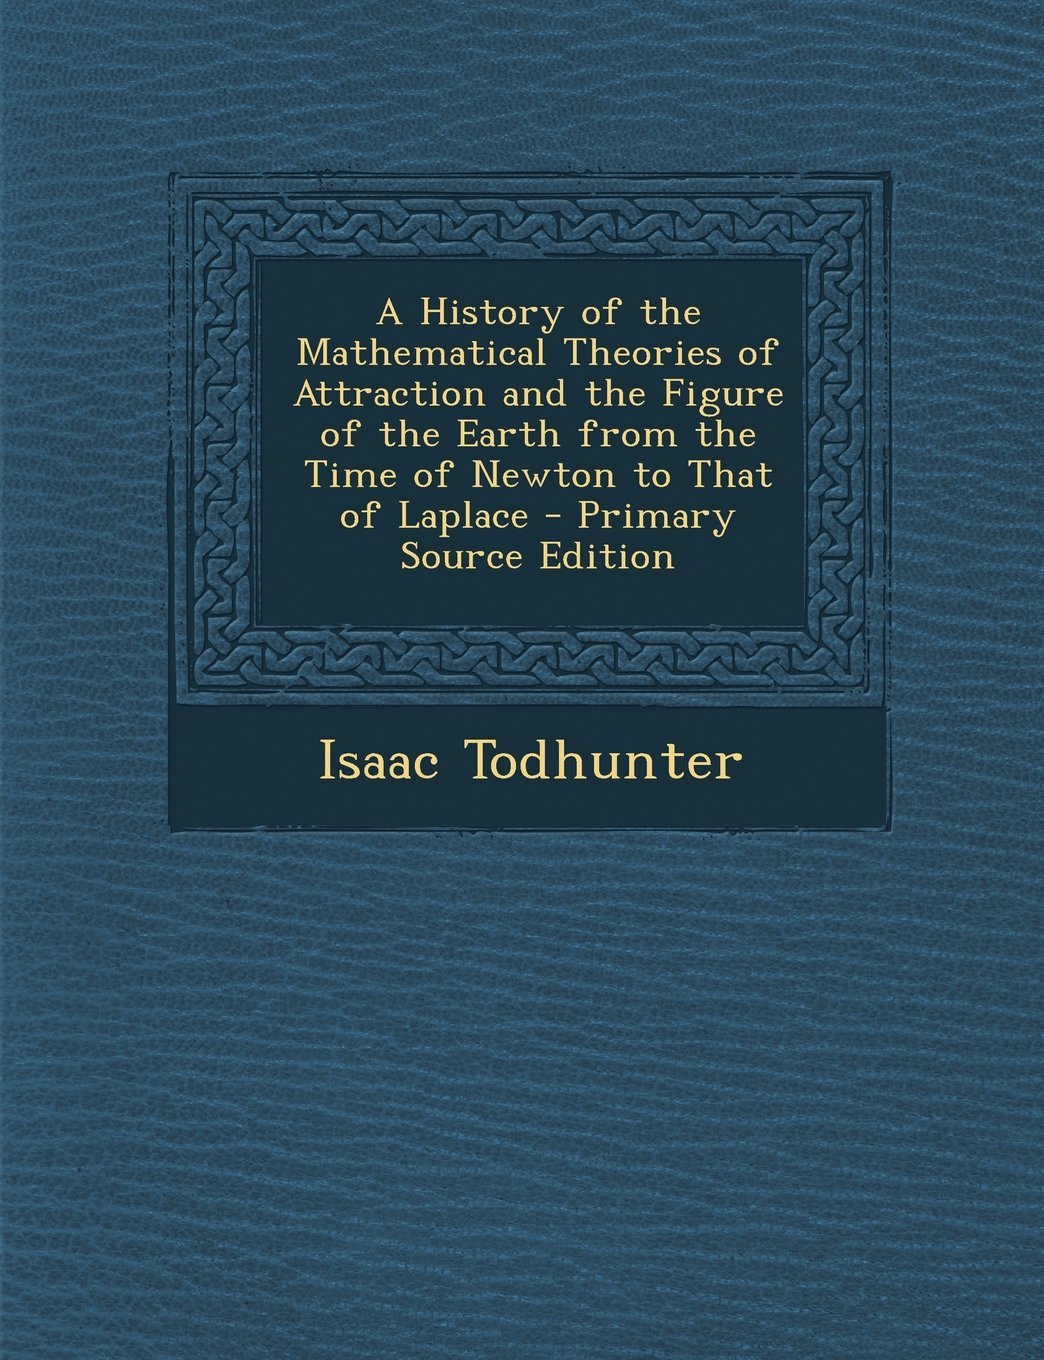 Download A   History of the Mathematical Theories of Attraction and the Figure of the Earth from the Time of Newton to That of Laplace - Primary Source Edition PDF